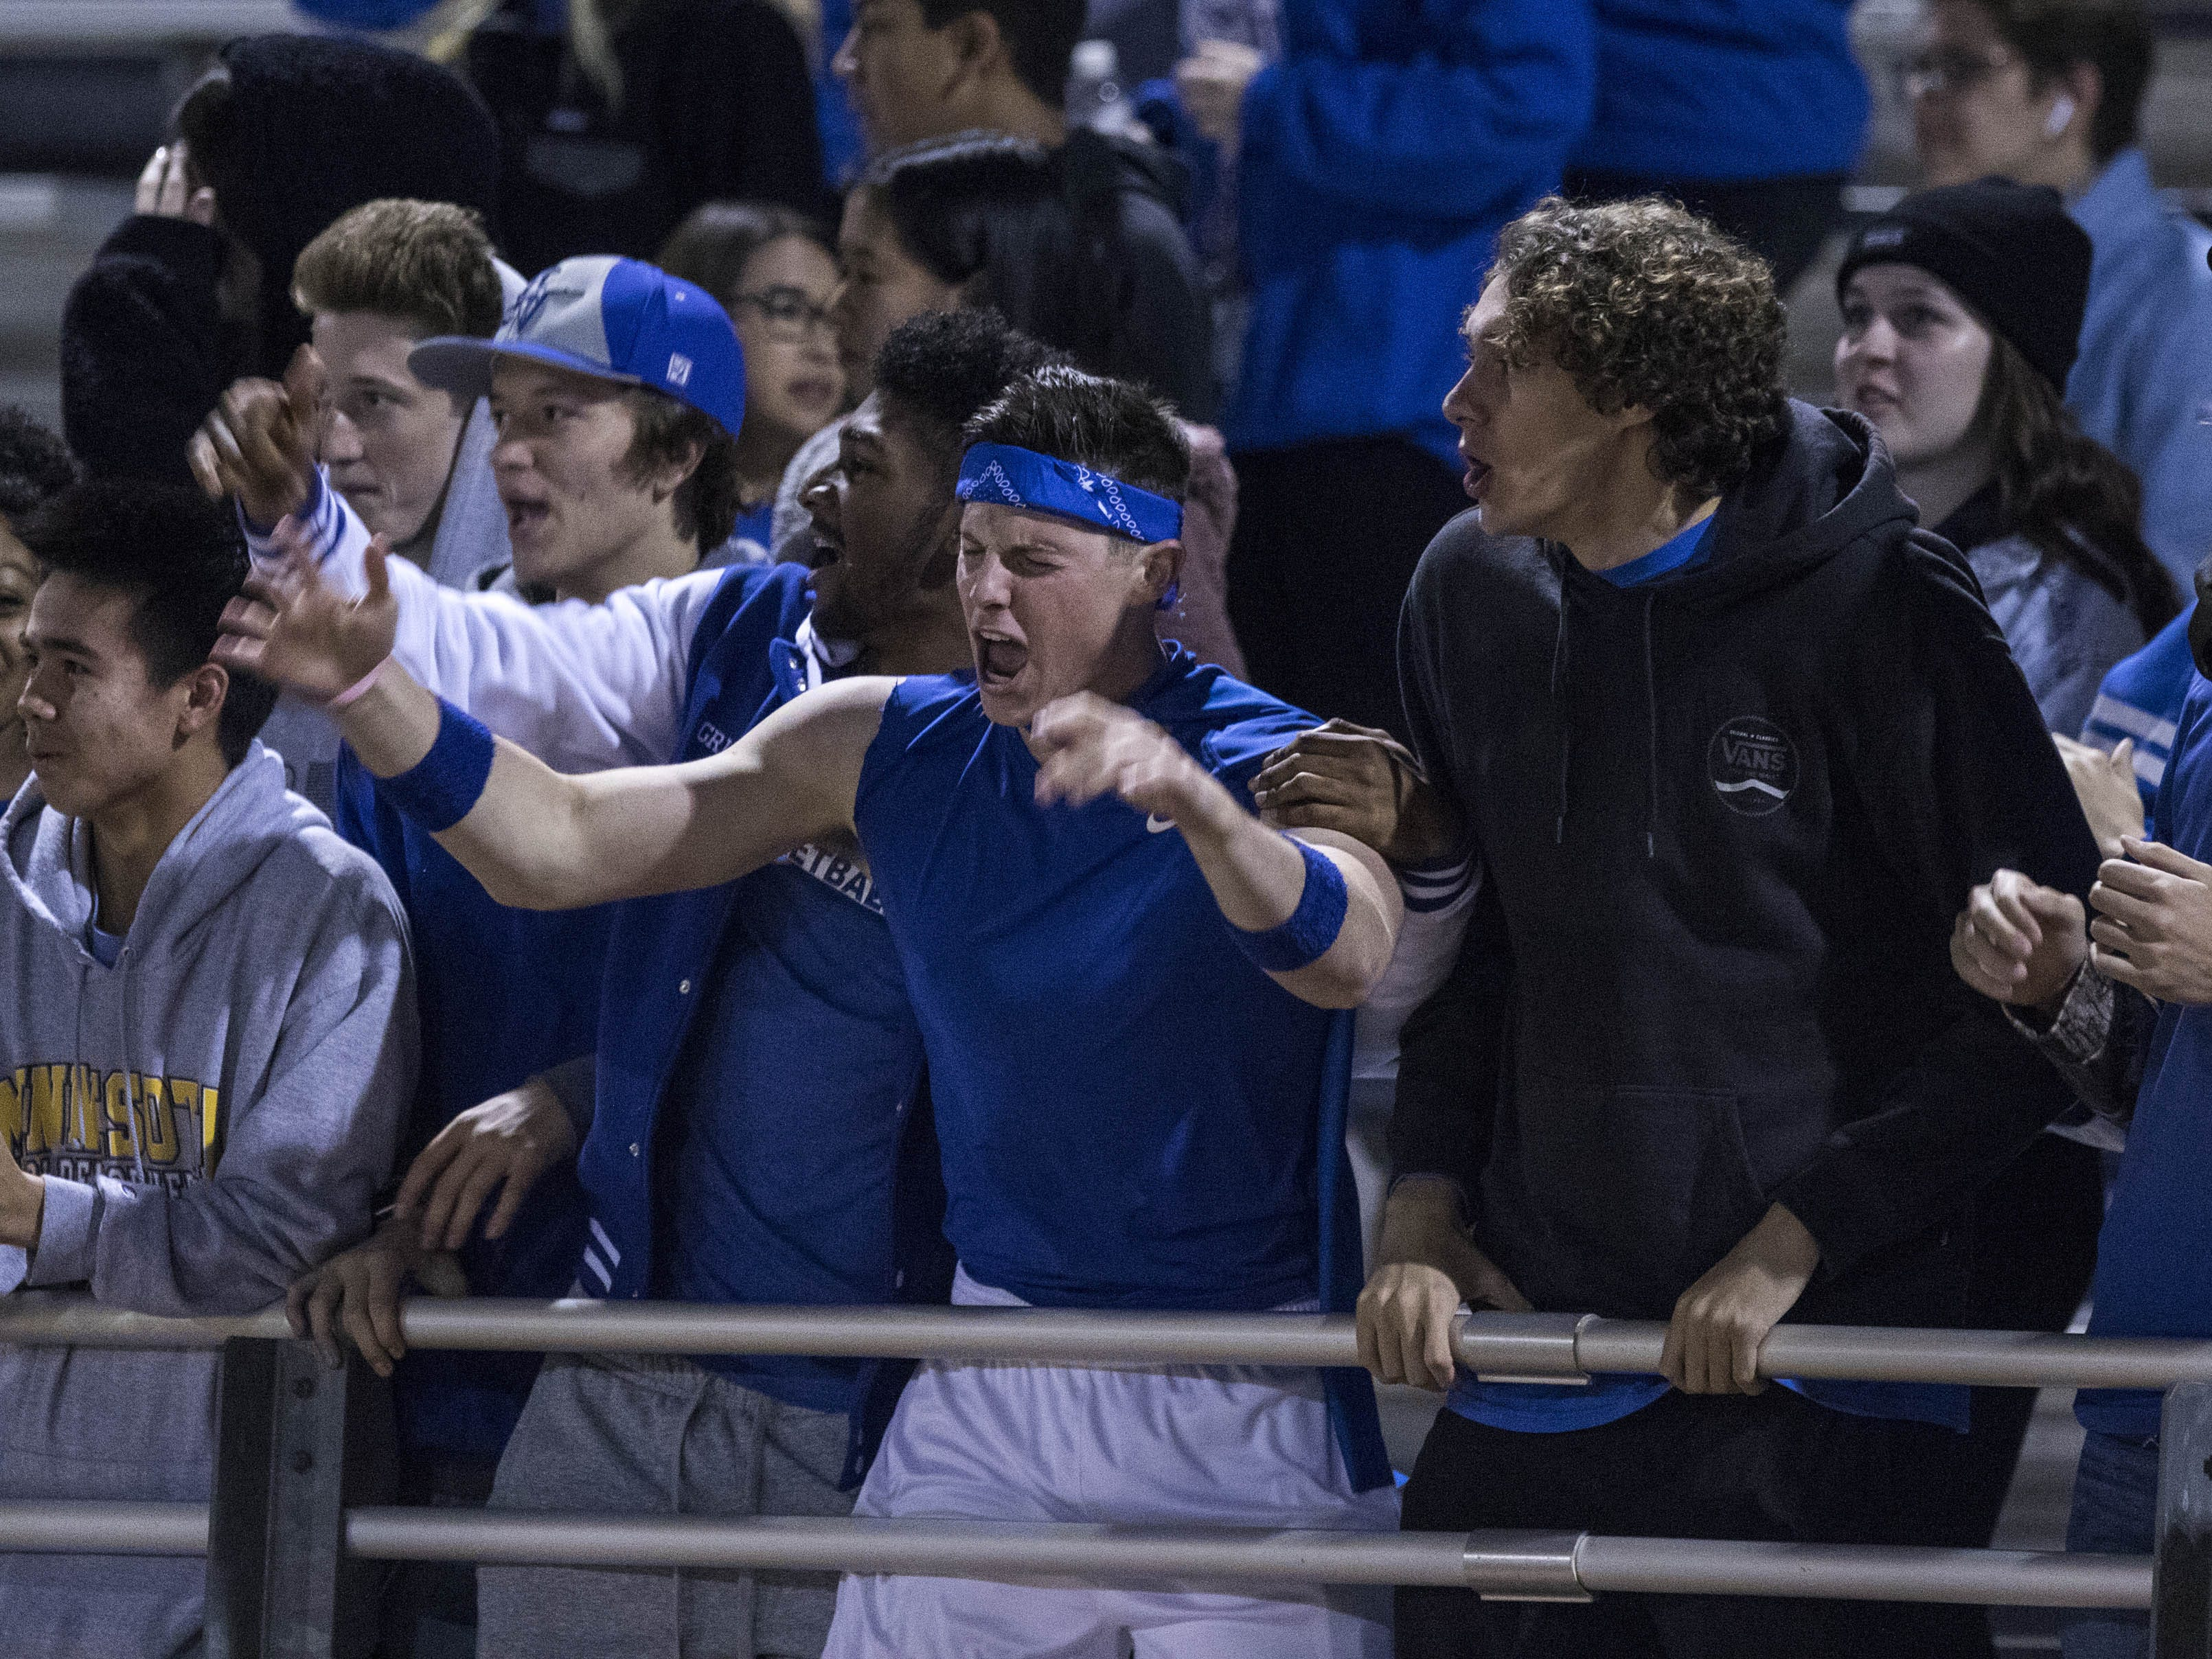 Valley Christian fans have a little fun after they scored against Northwest Christian during their game with Valley Christian at North Canyon High School in Phoenix  Friday, Nov.17, 2018. #azhsfb